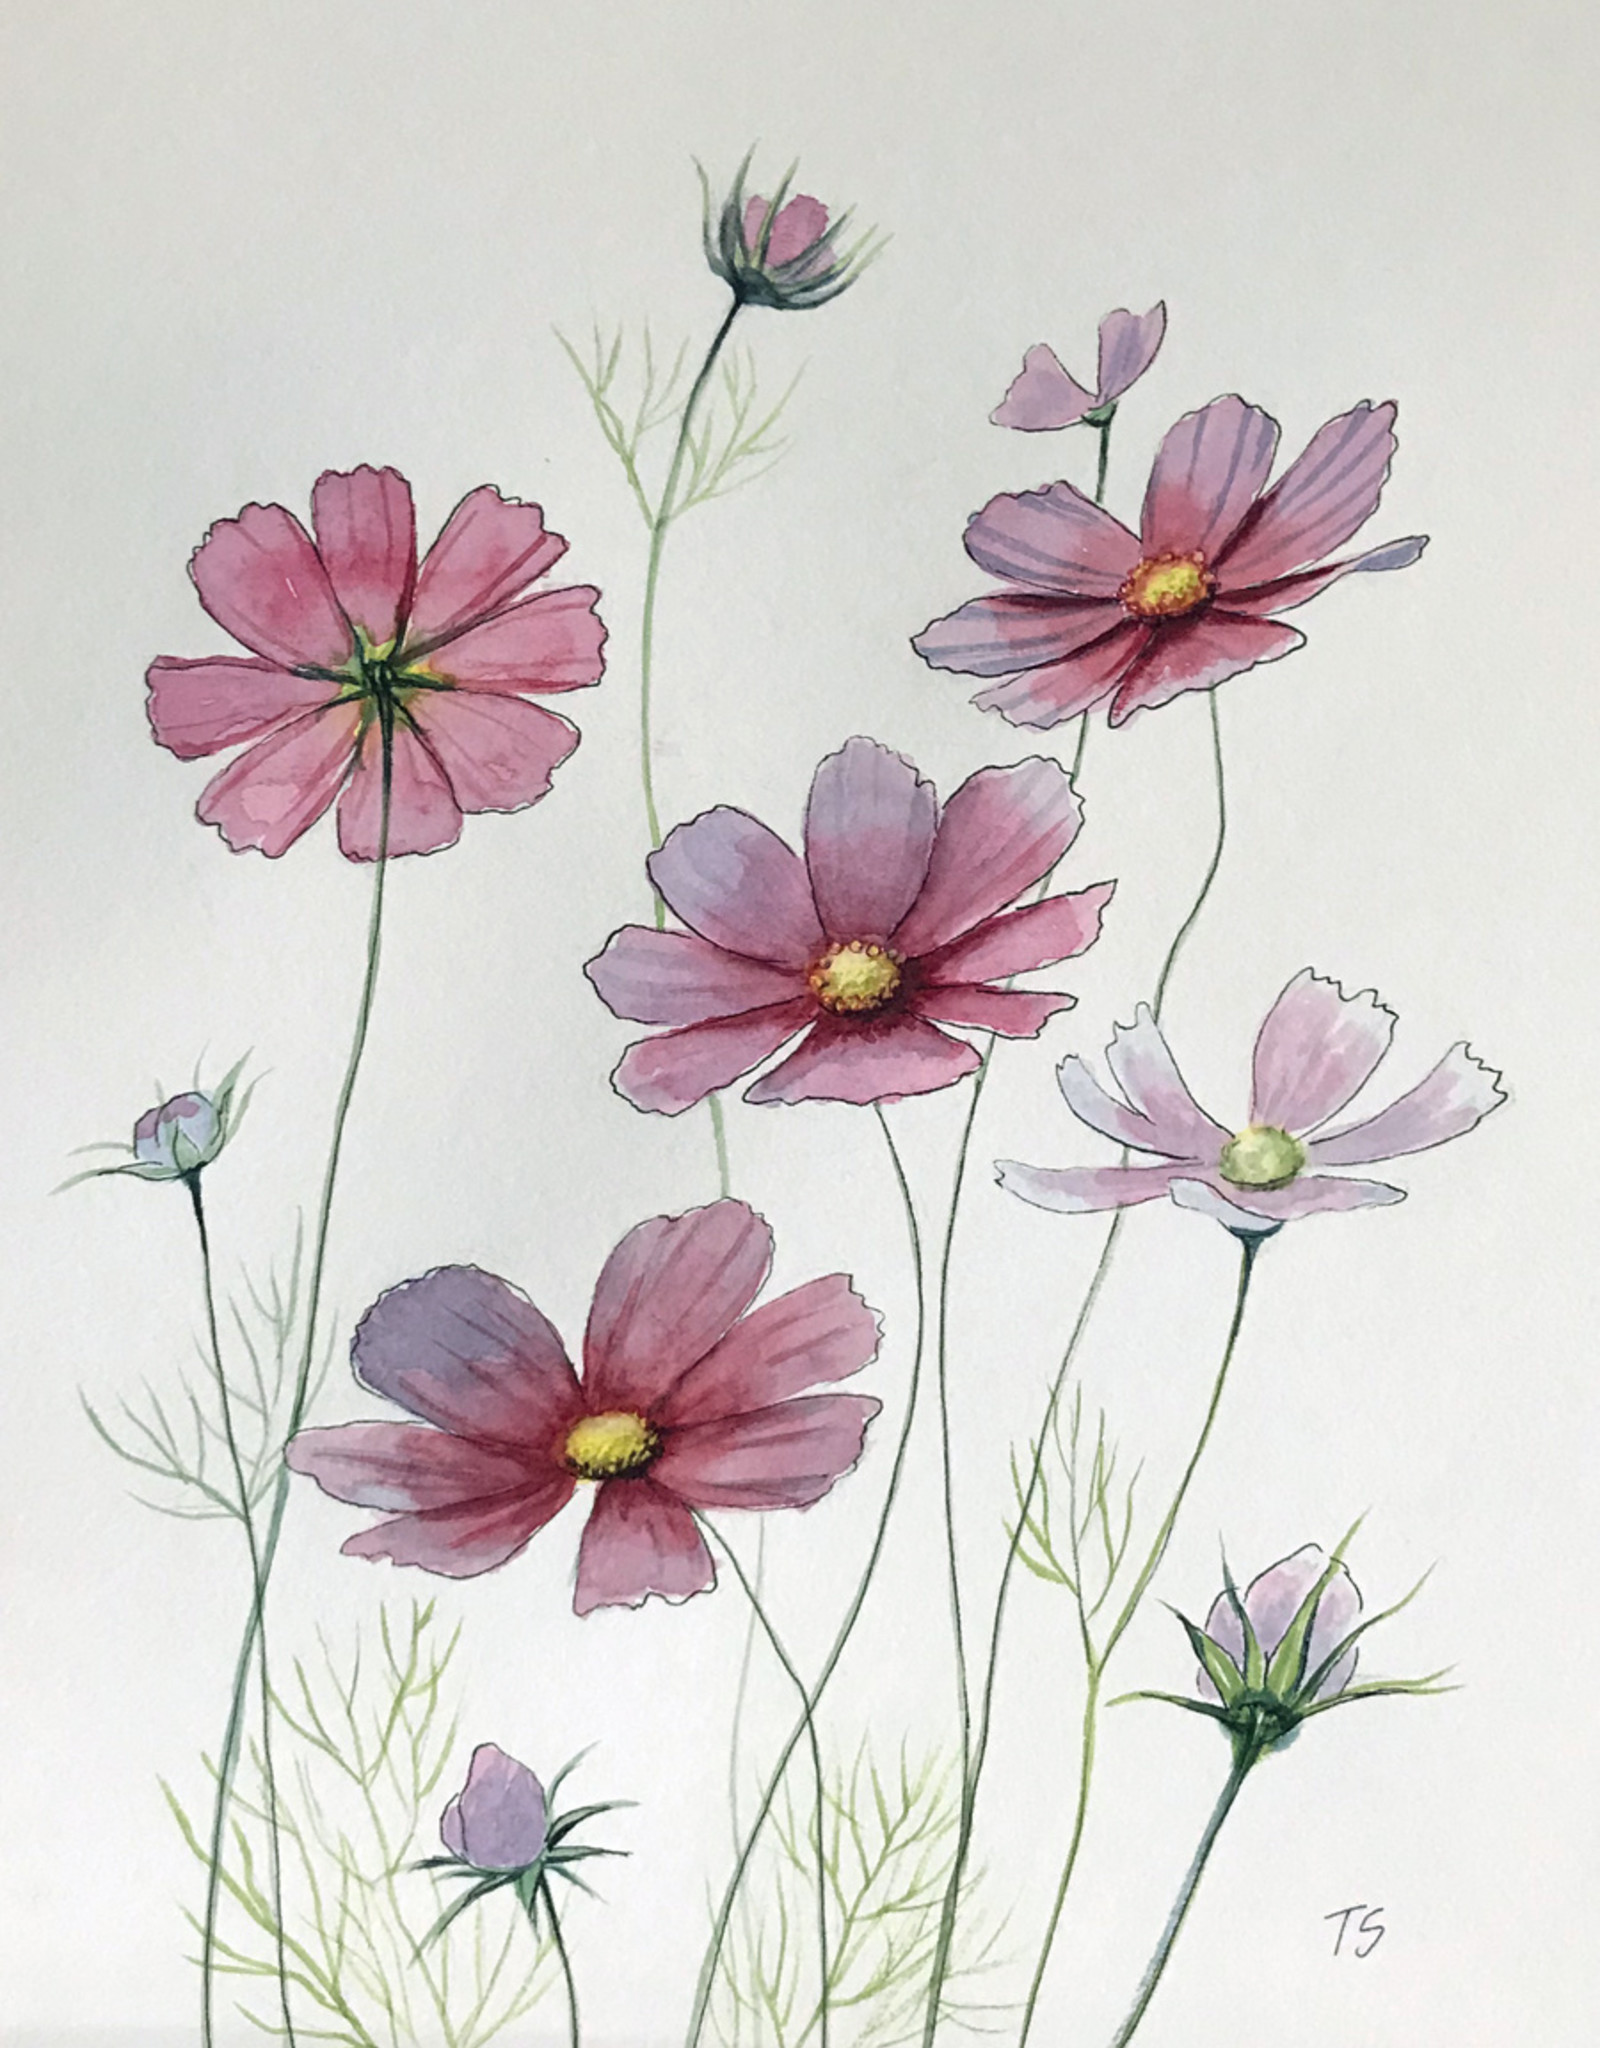 Tamara S Watercolour Art Class Cosmos Flowers Wed Jan 27 -1:00 pm